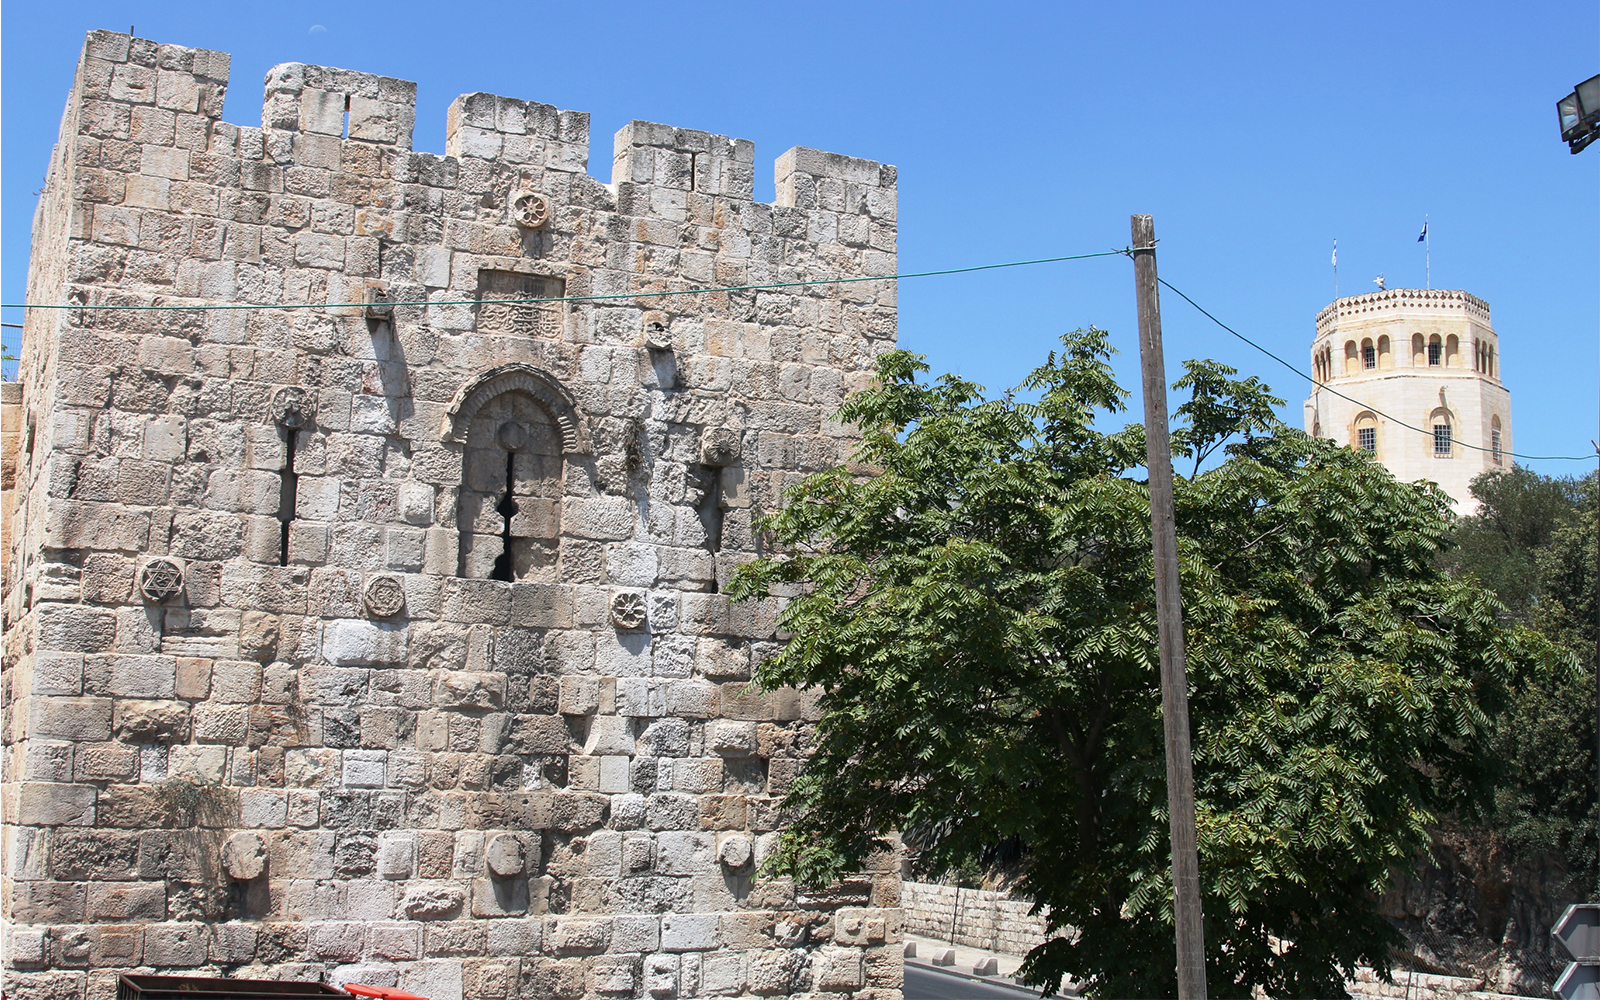 The Stork Tower, likely named for migratory birds who rested on its battlements. (Shmuel Bar-Am)